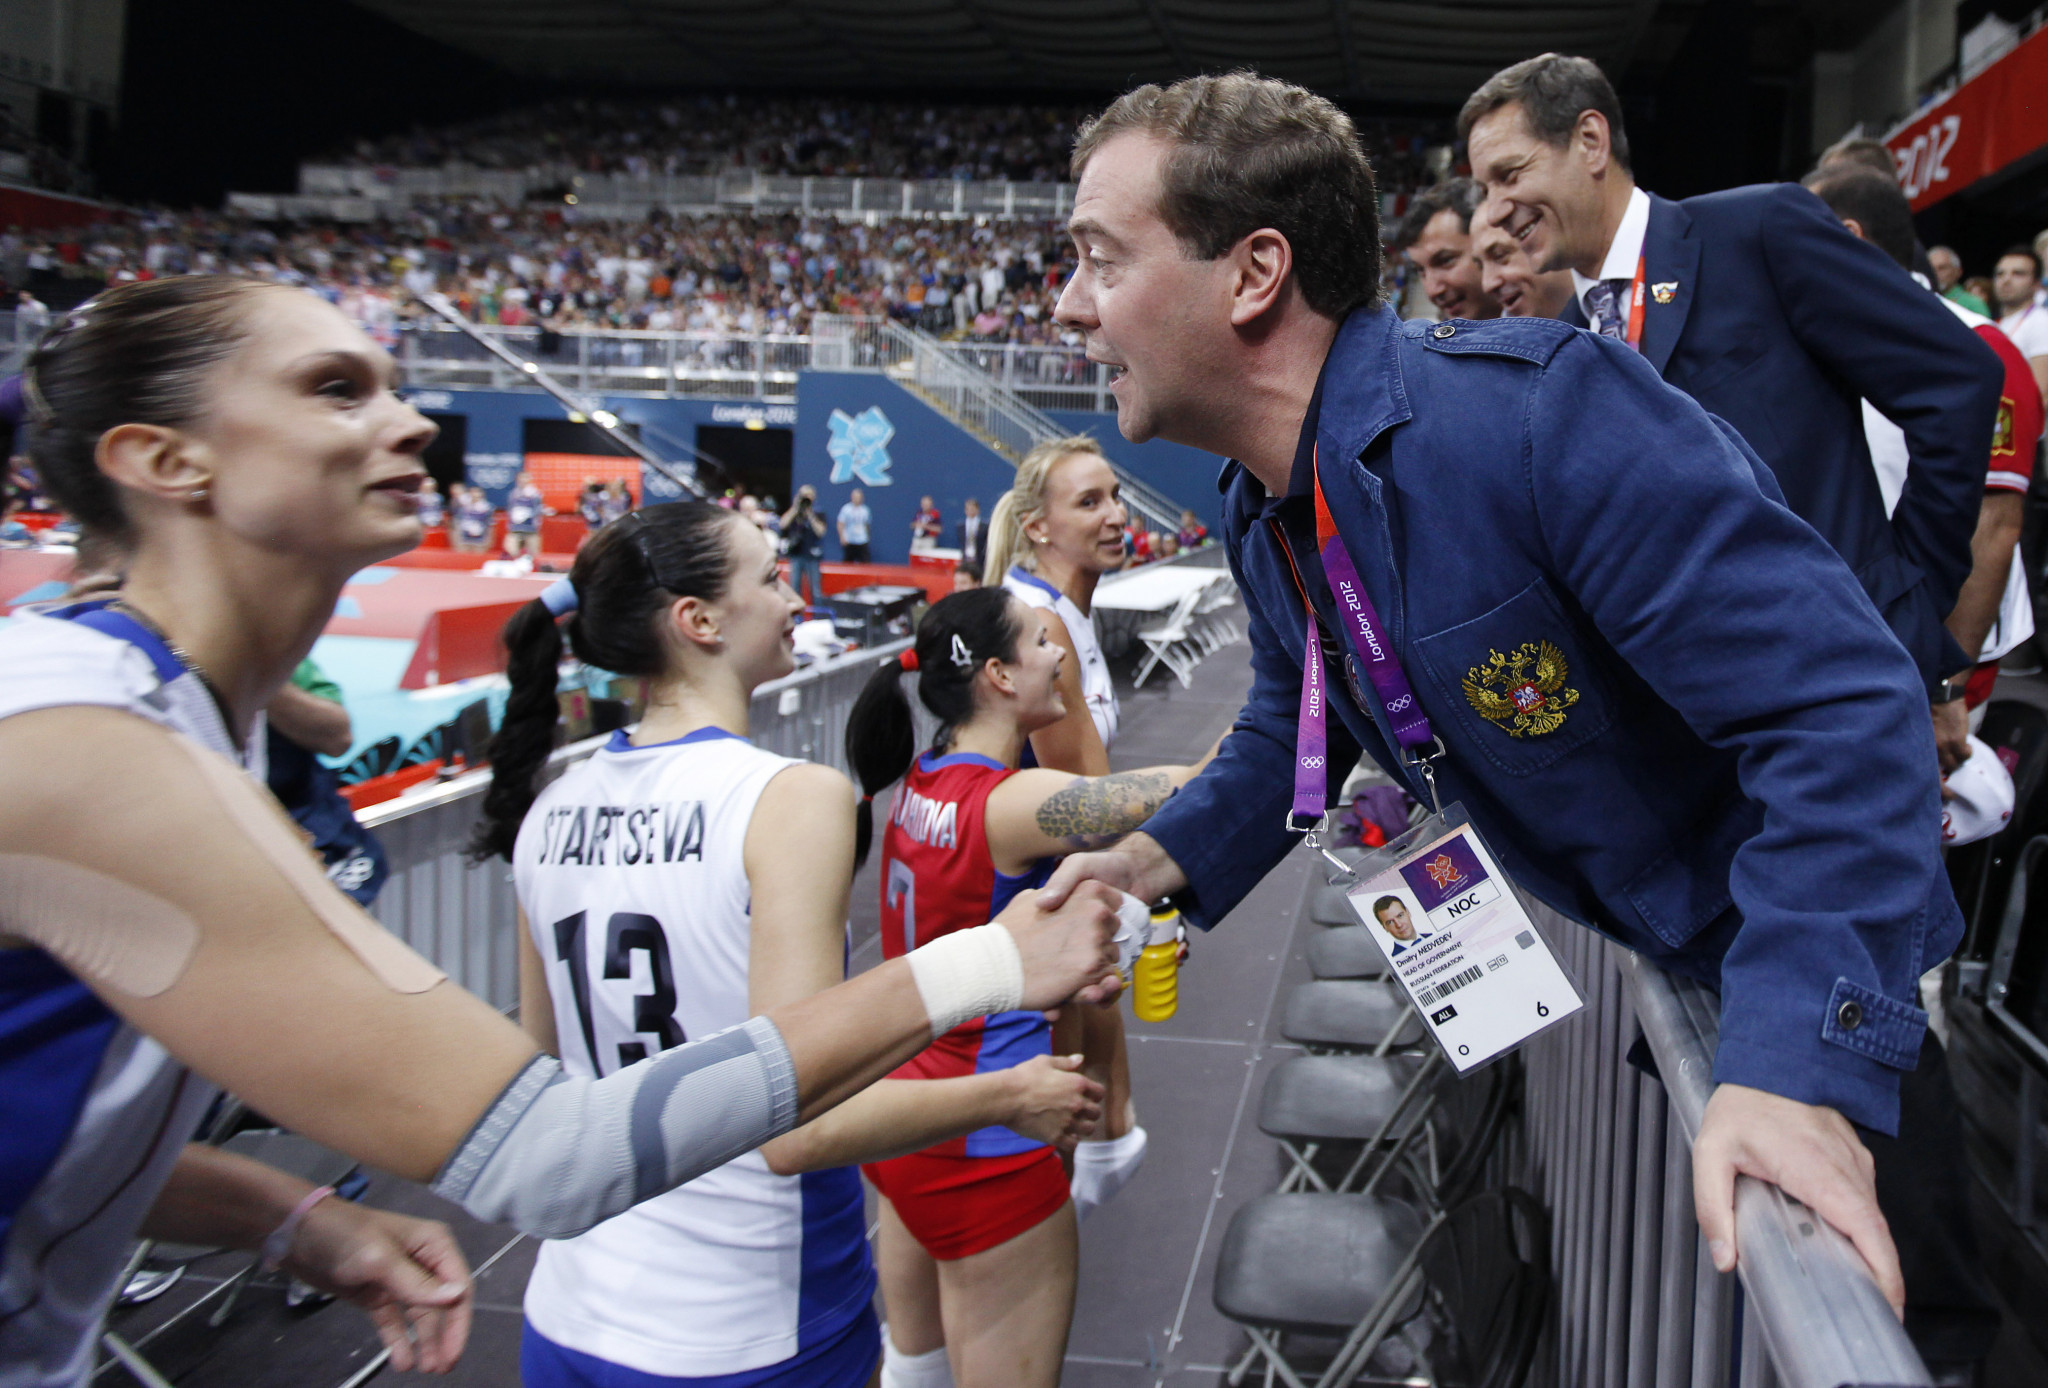 Dmitry Medvedev pictured attending the London 2012 Olympic Games, which took place when he was President of Russia ©Getty Images